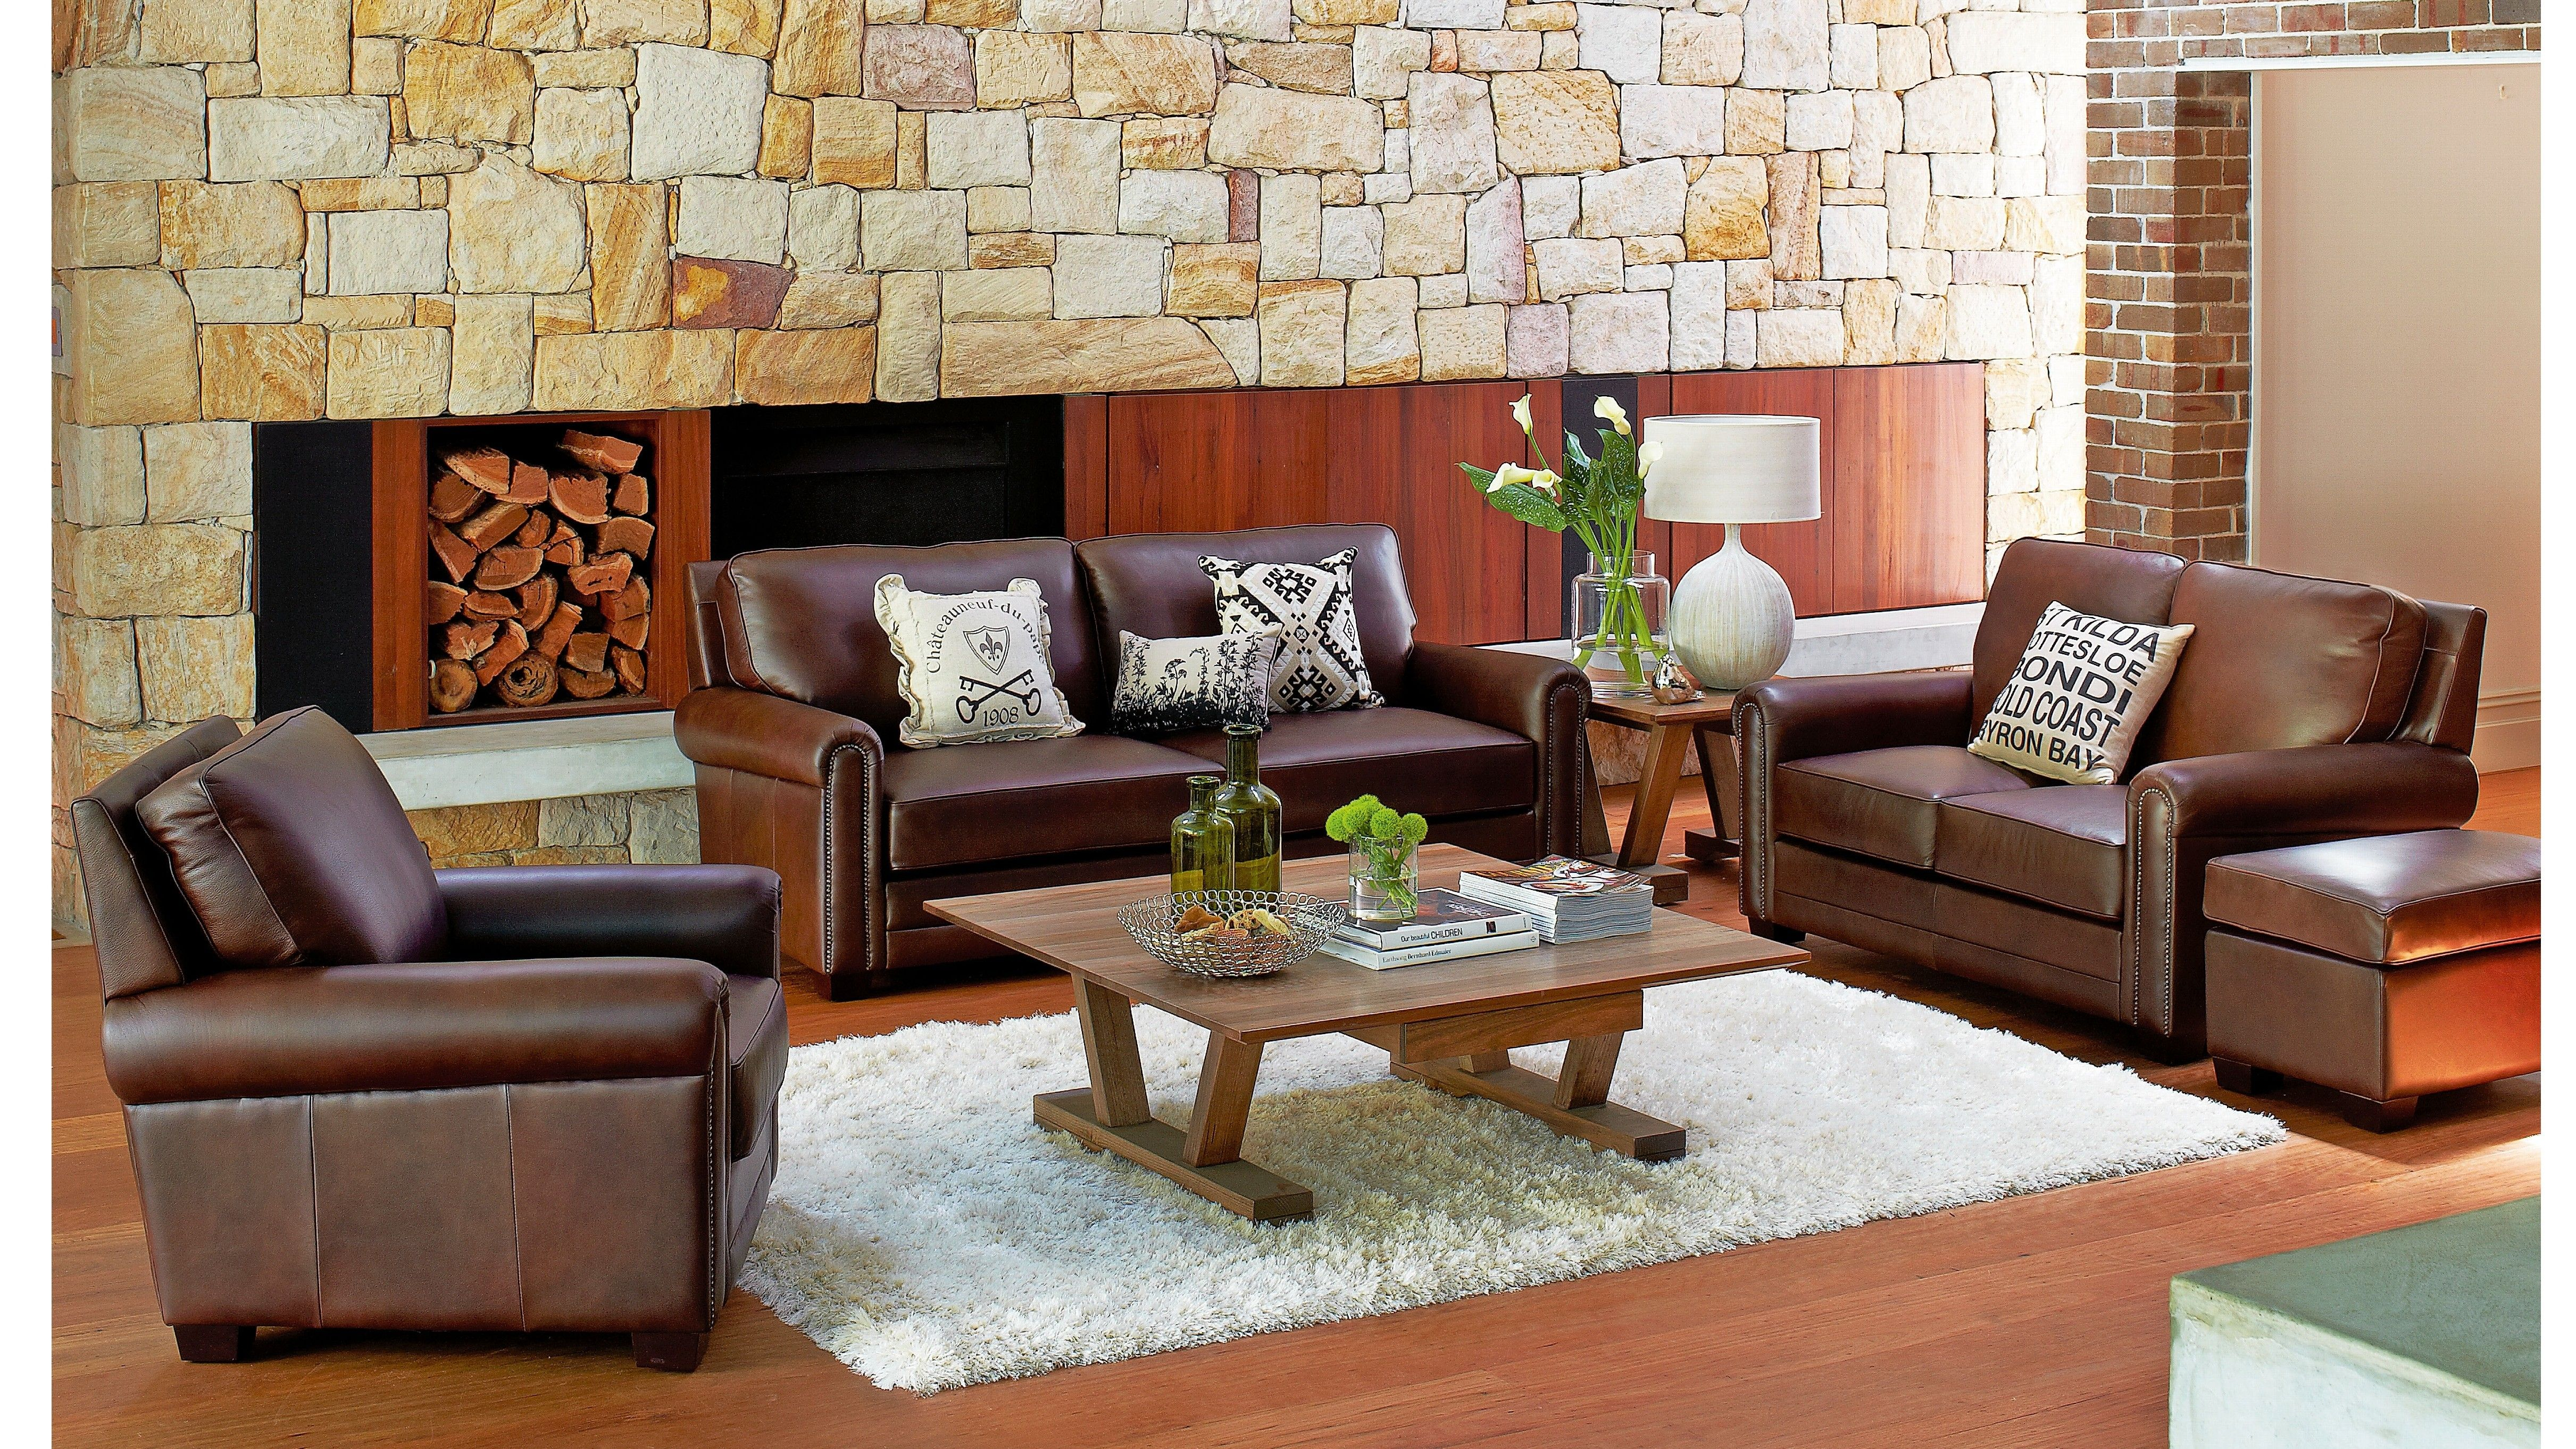 harveys 3 seater recliner sofa cushion makers in bangalore ritz leather harvey norman ideas para el